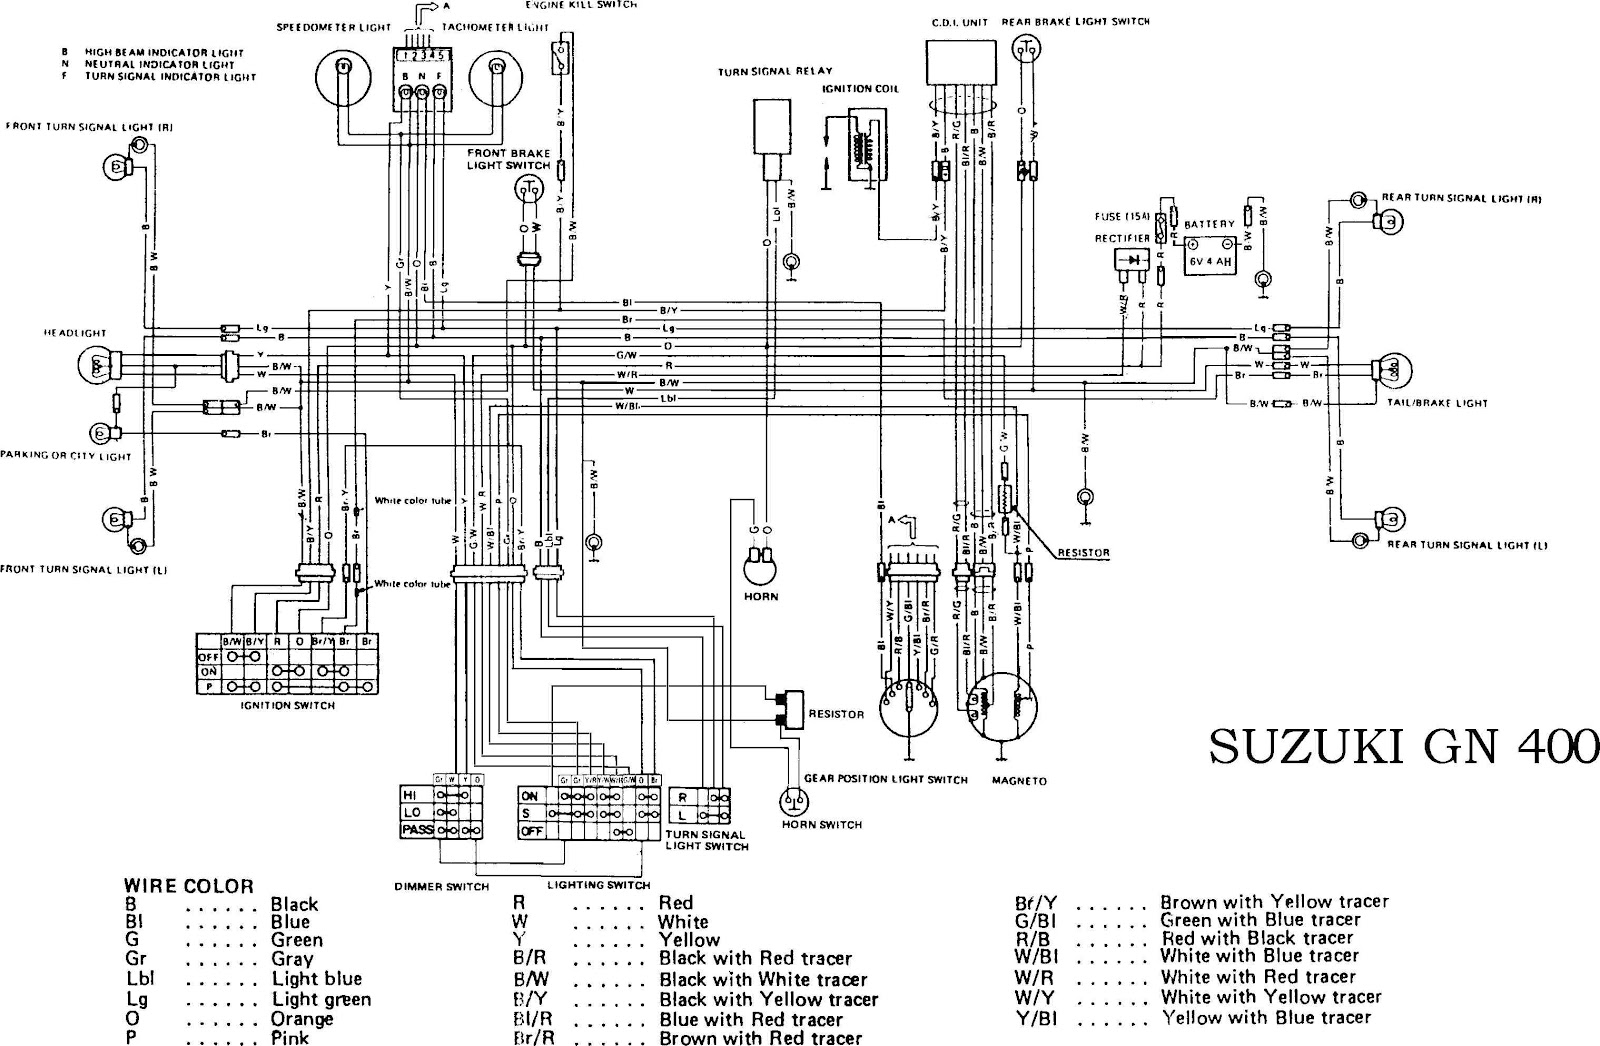 Wiring Diagram For 2005 Yamaha Grizzly 2002 Library Suzuki Gsx R600 Srad Motorcycle 1998 Complete Electrical 660 Schematic